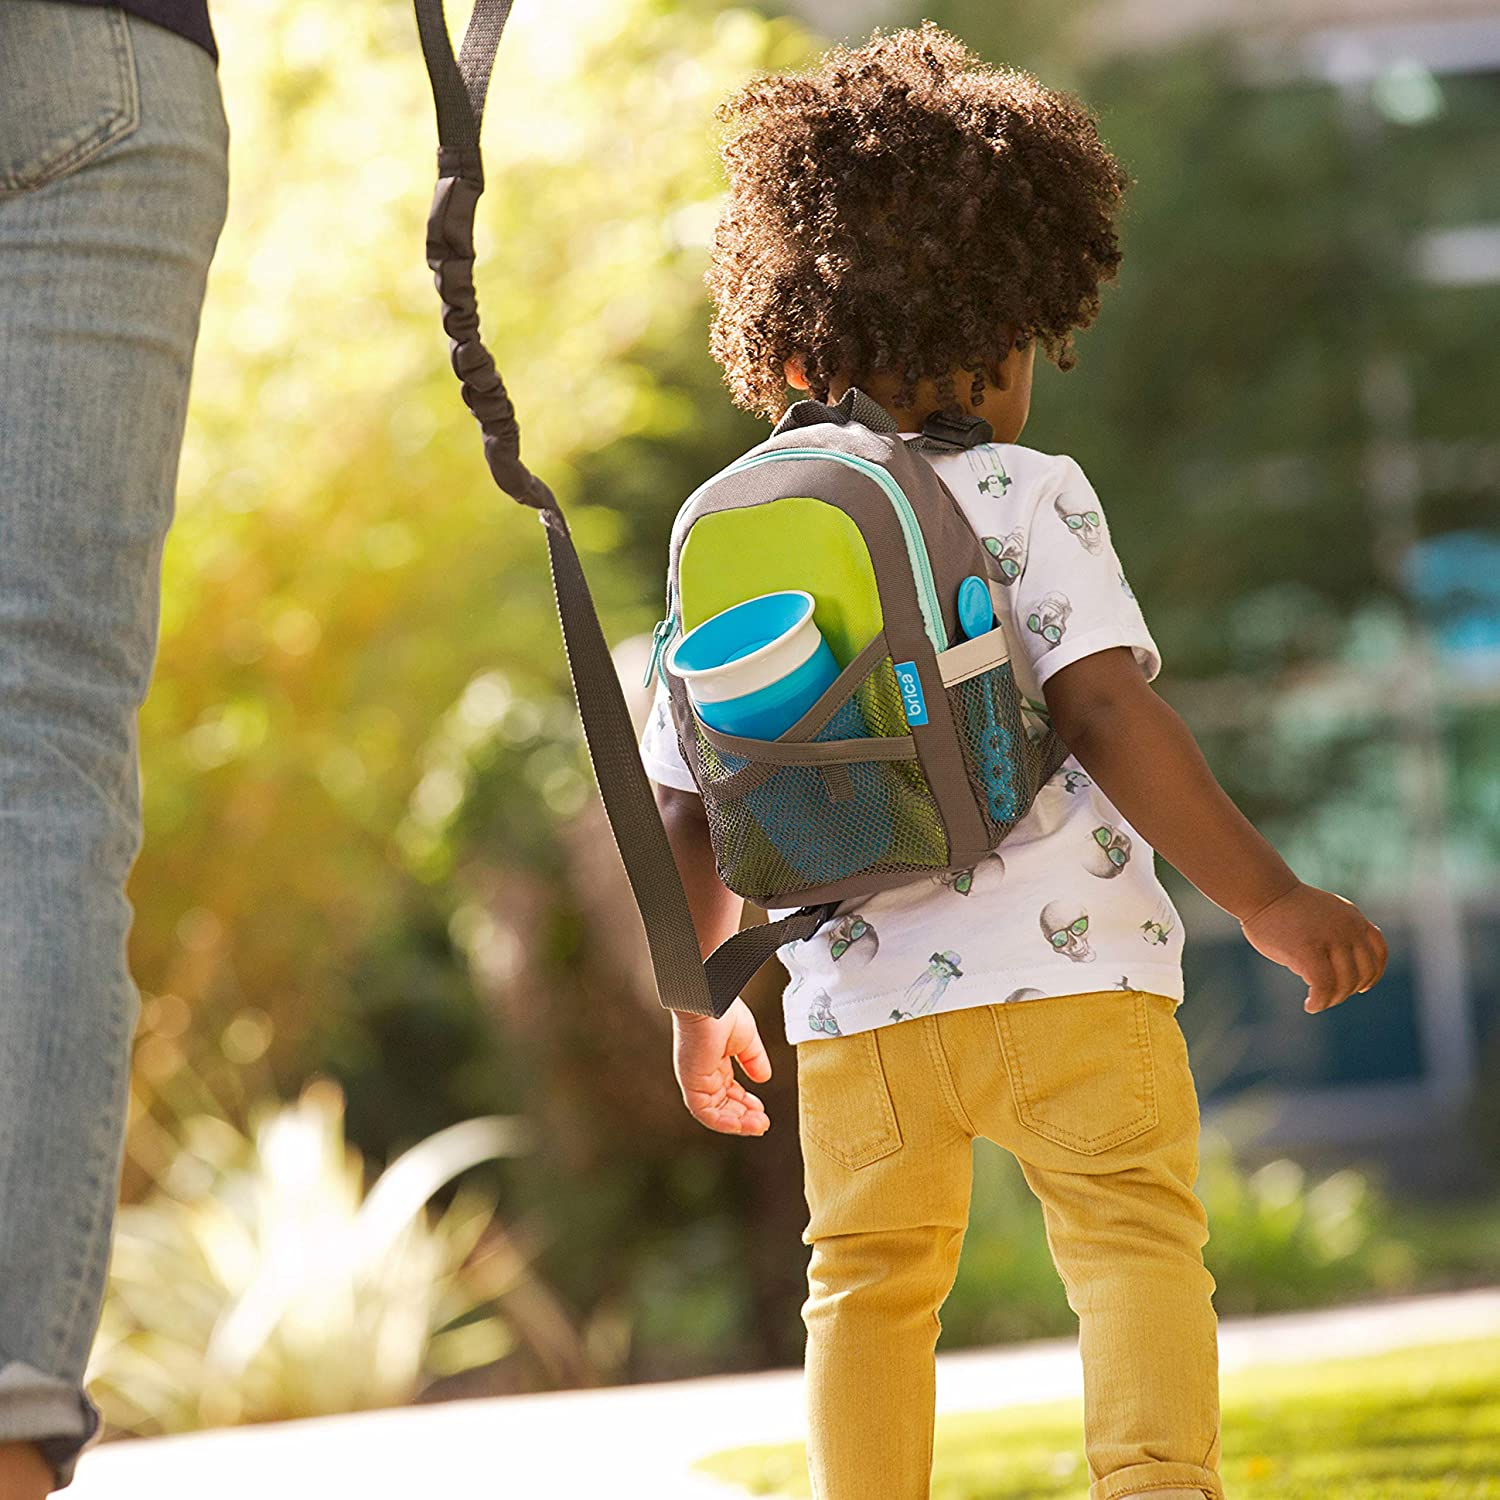 Top 7 Best Child Leashes, Backpacks, Straps & Harness Reviews in 2020 3